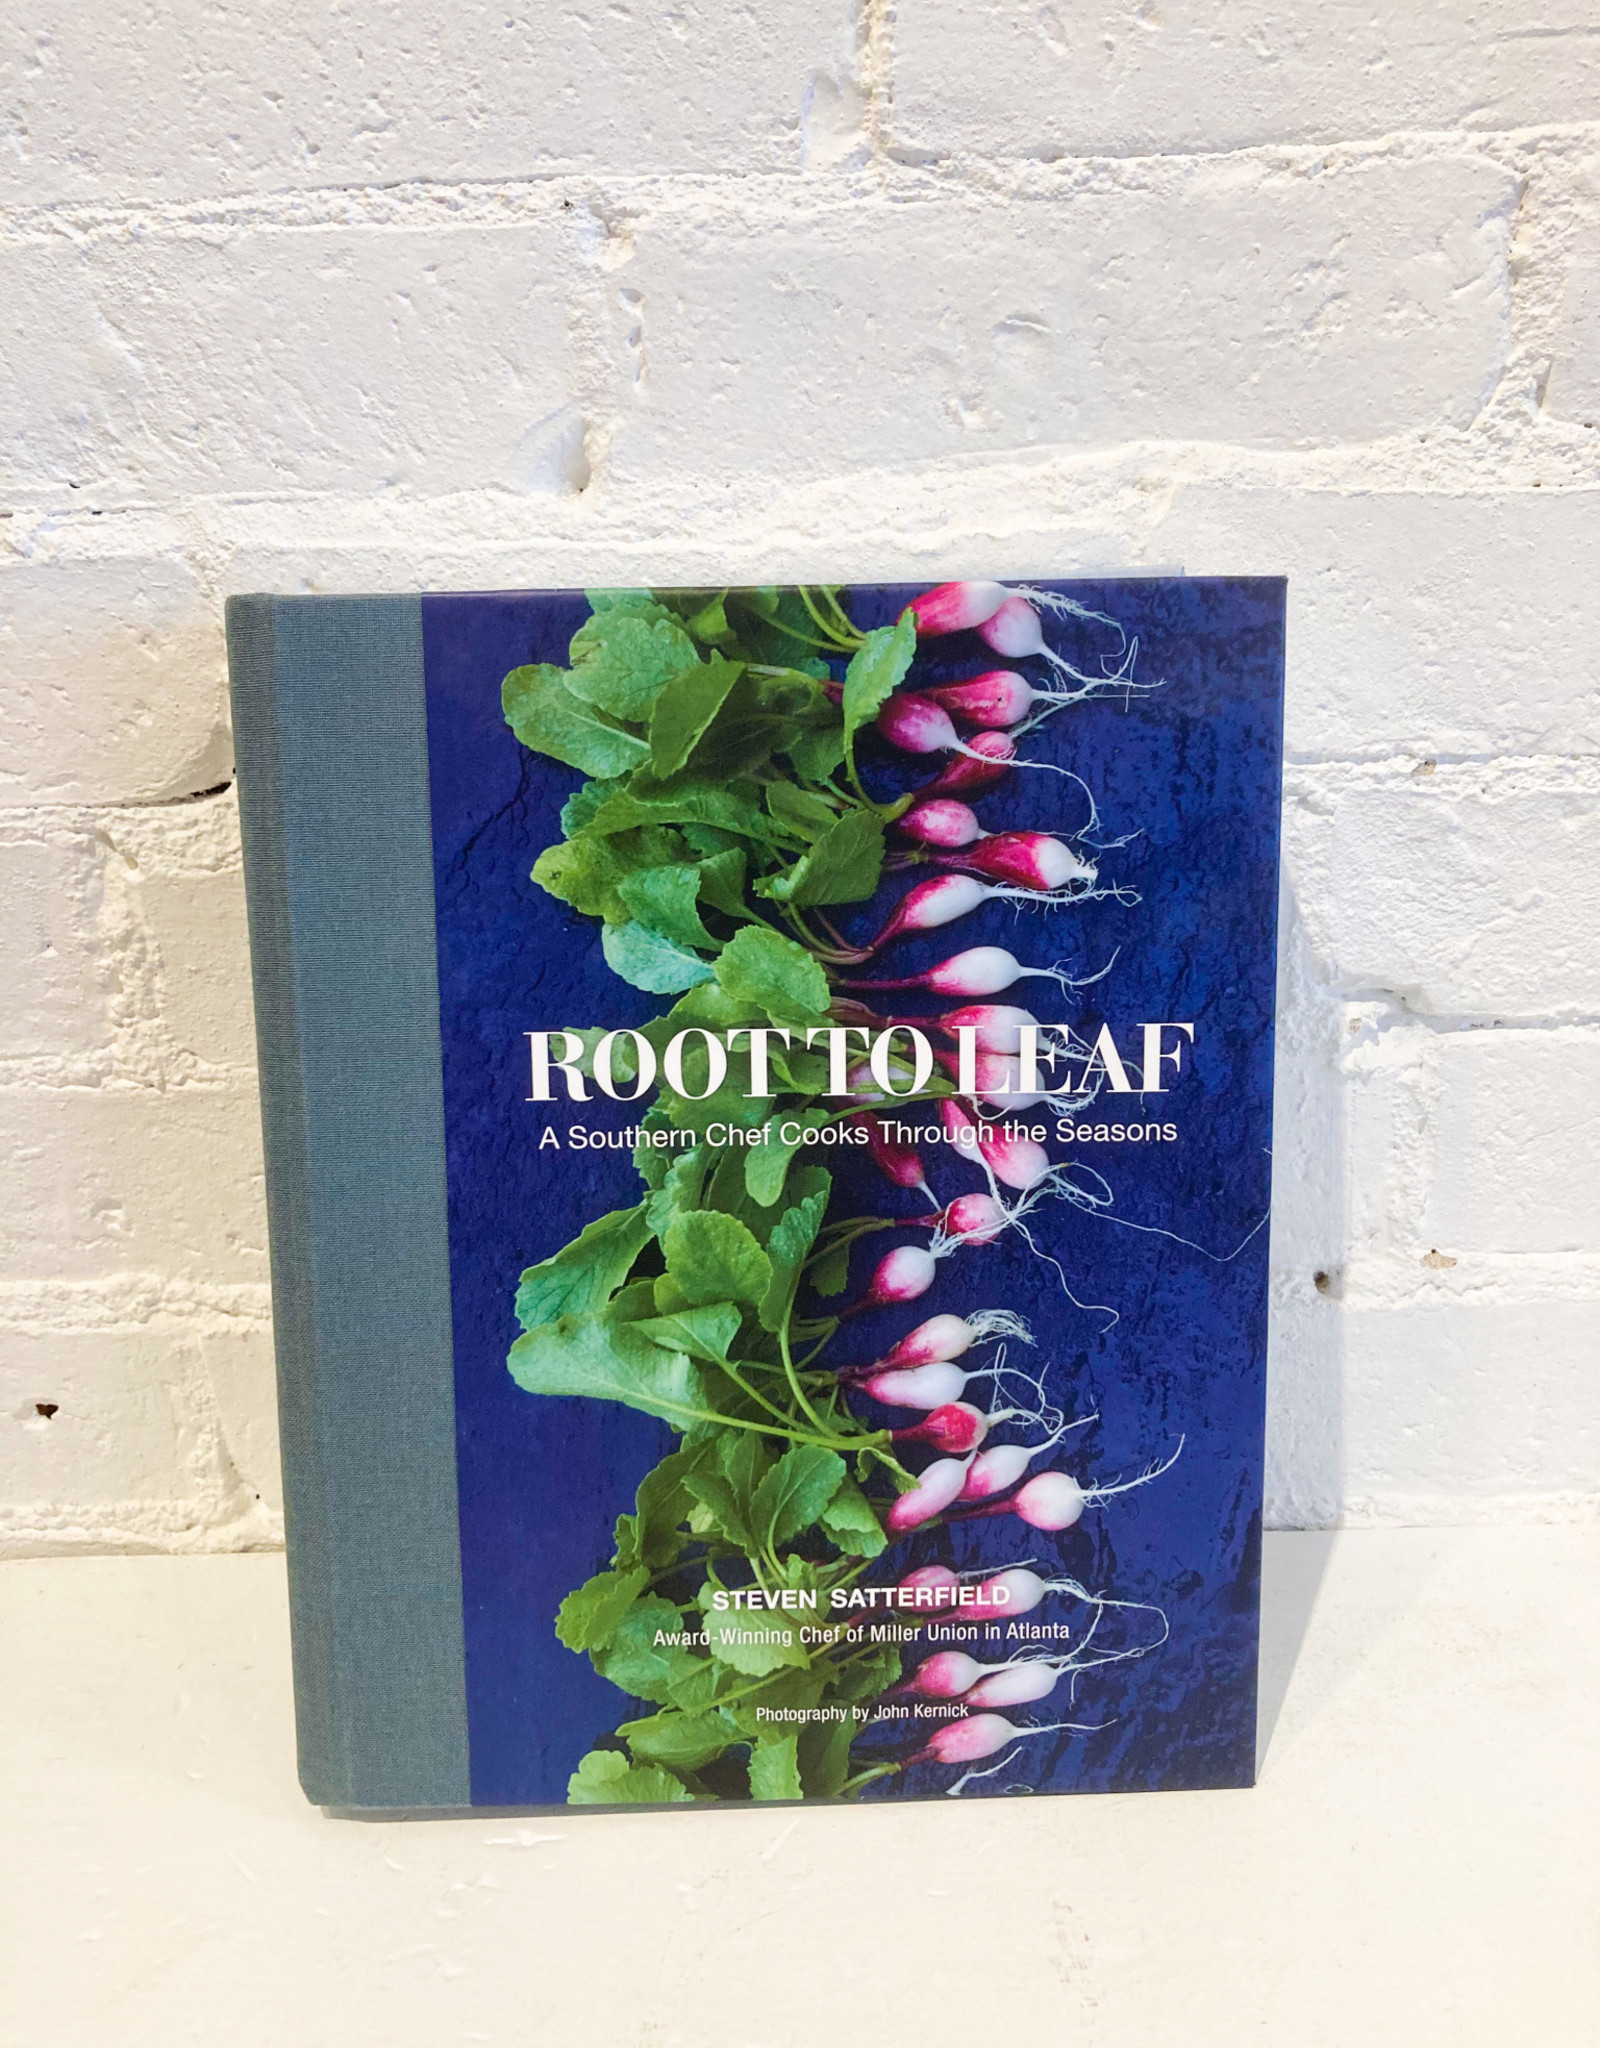 Root to Leaf by Steven Satterfield